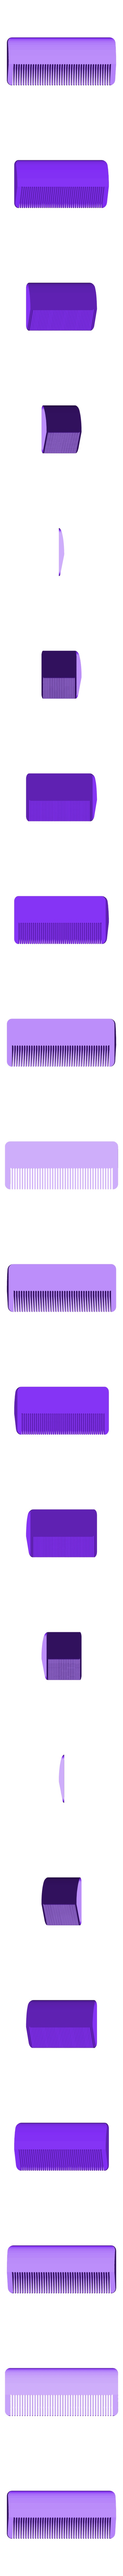 customized_travel_comb_no1.stl Download free STL file Customizable Comb • 3D printable model, MightyNozzle